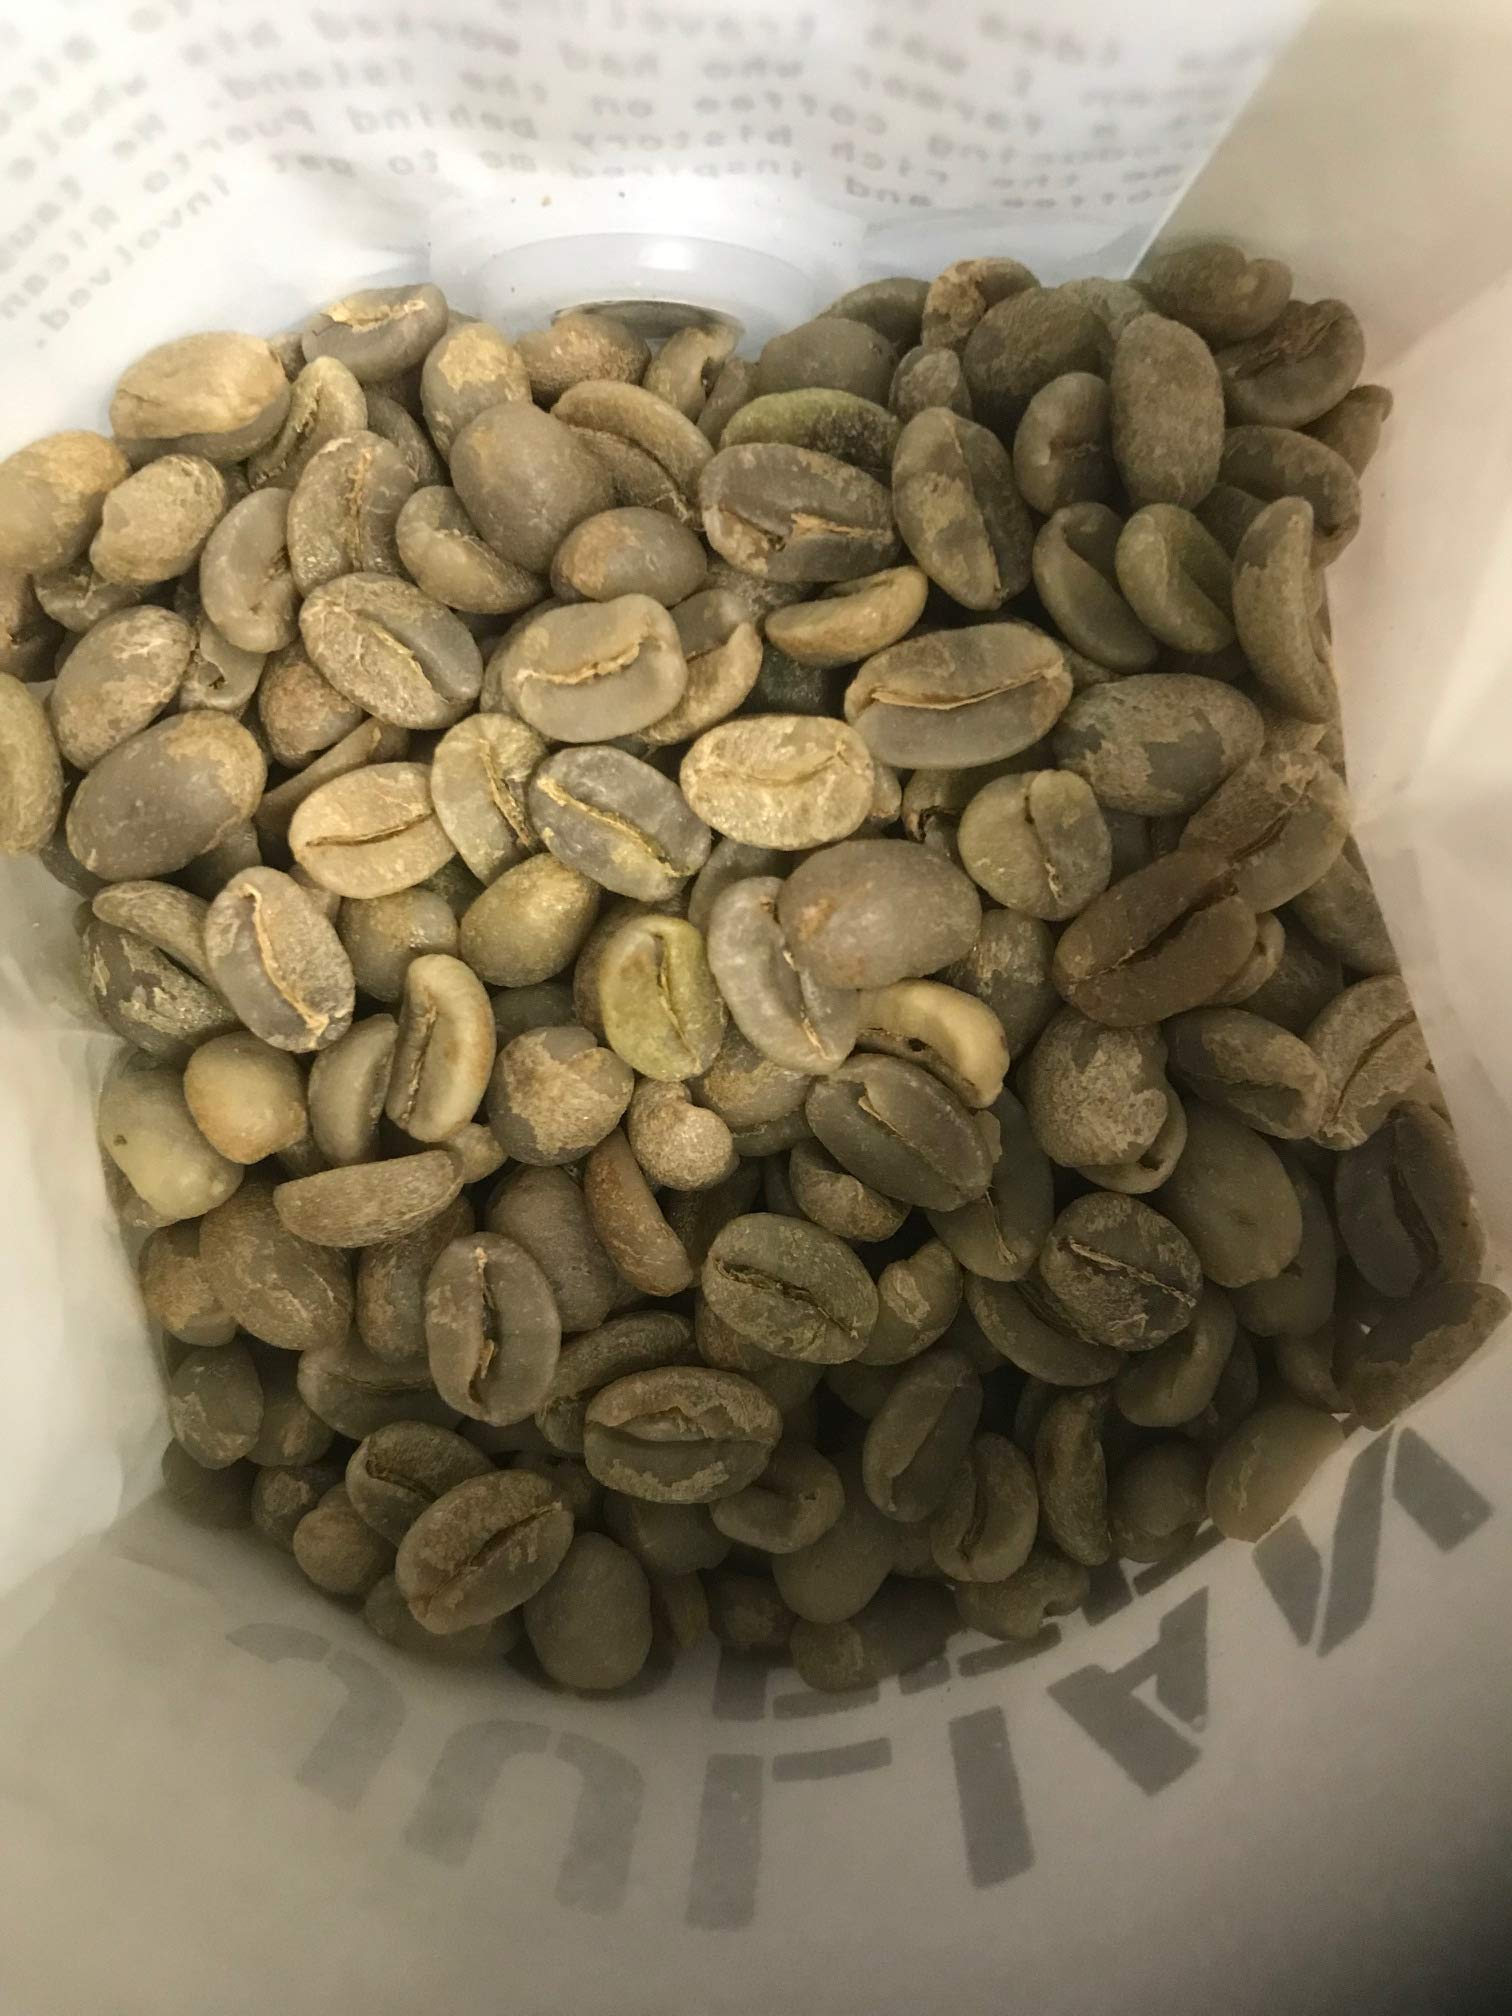 Julian Coffee - Unroasted AA Specialty Puerto Rican Green Coffee Beans, Shade Grown on a Family Farm, Single Origin, 24 oz Bag, Altitude 2300 ft